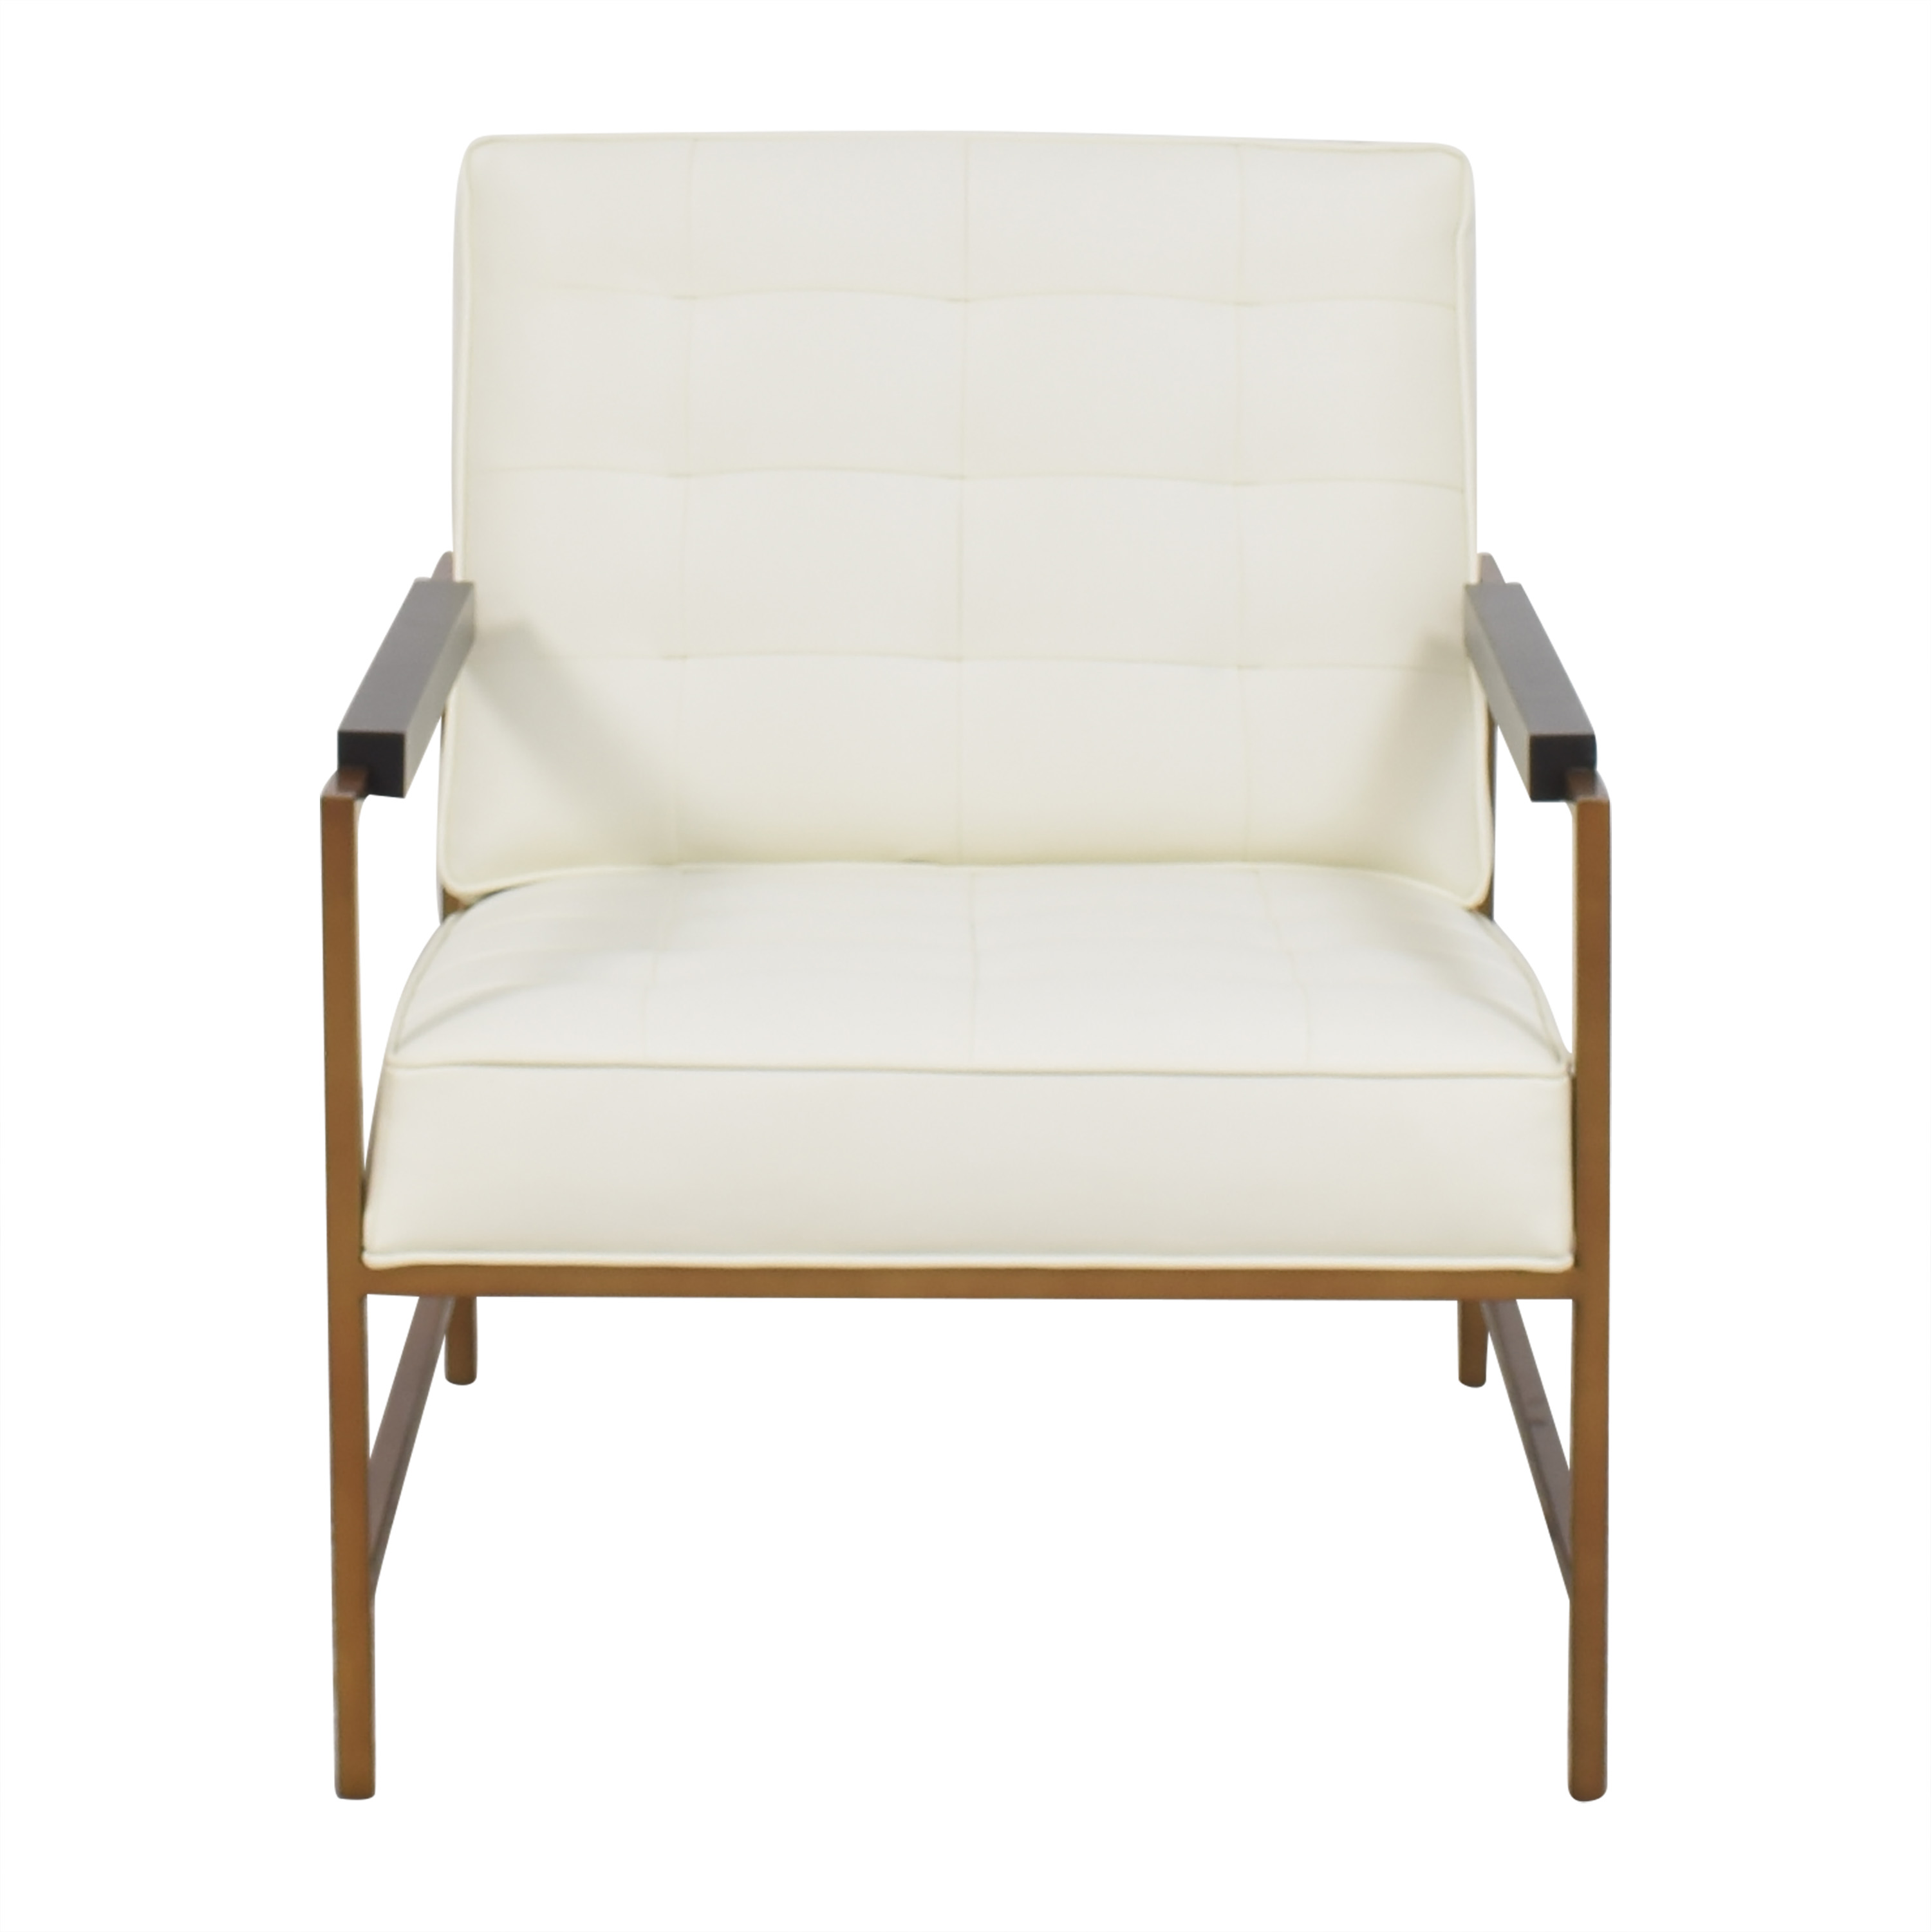 Mitchell Gold + Bob Williams Major Arm Chair / Chairs